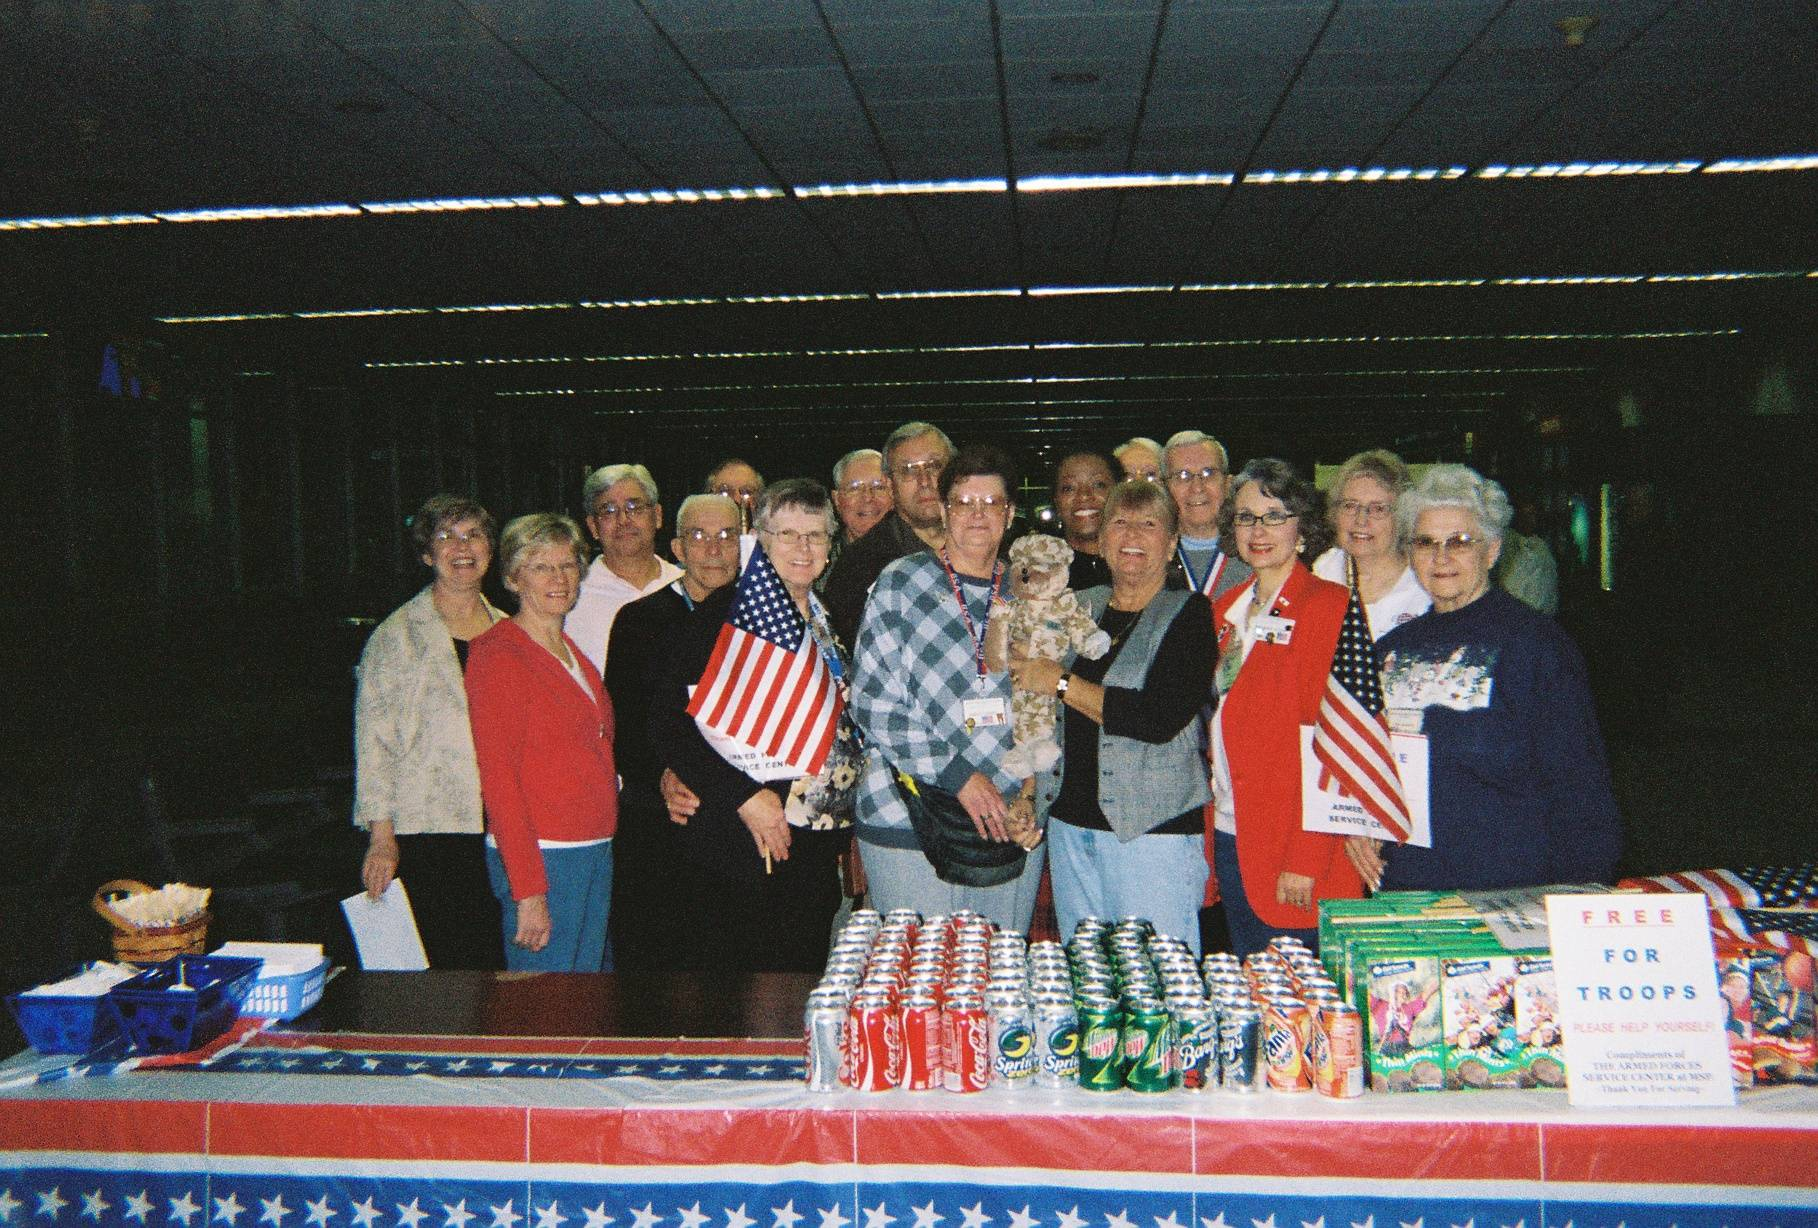 Contemporary photo of a group of people with miniature American flags, standing behind a table of refreshments.